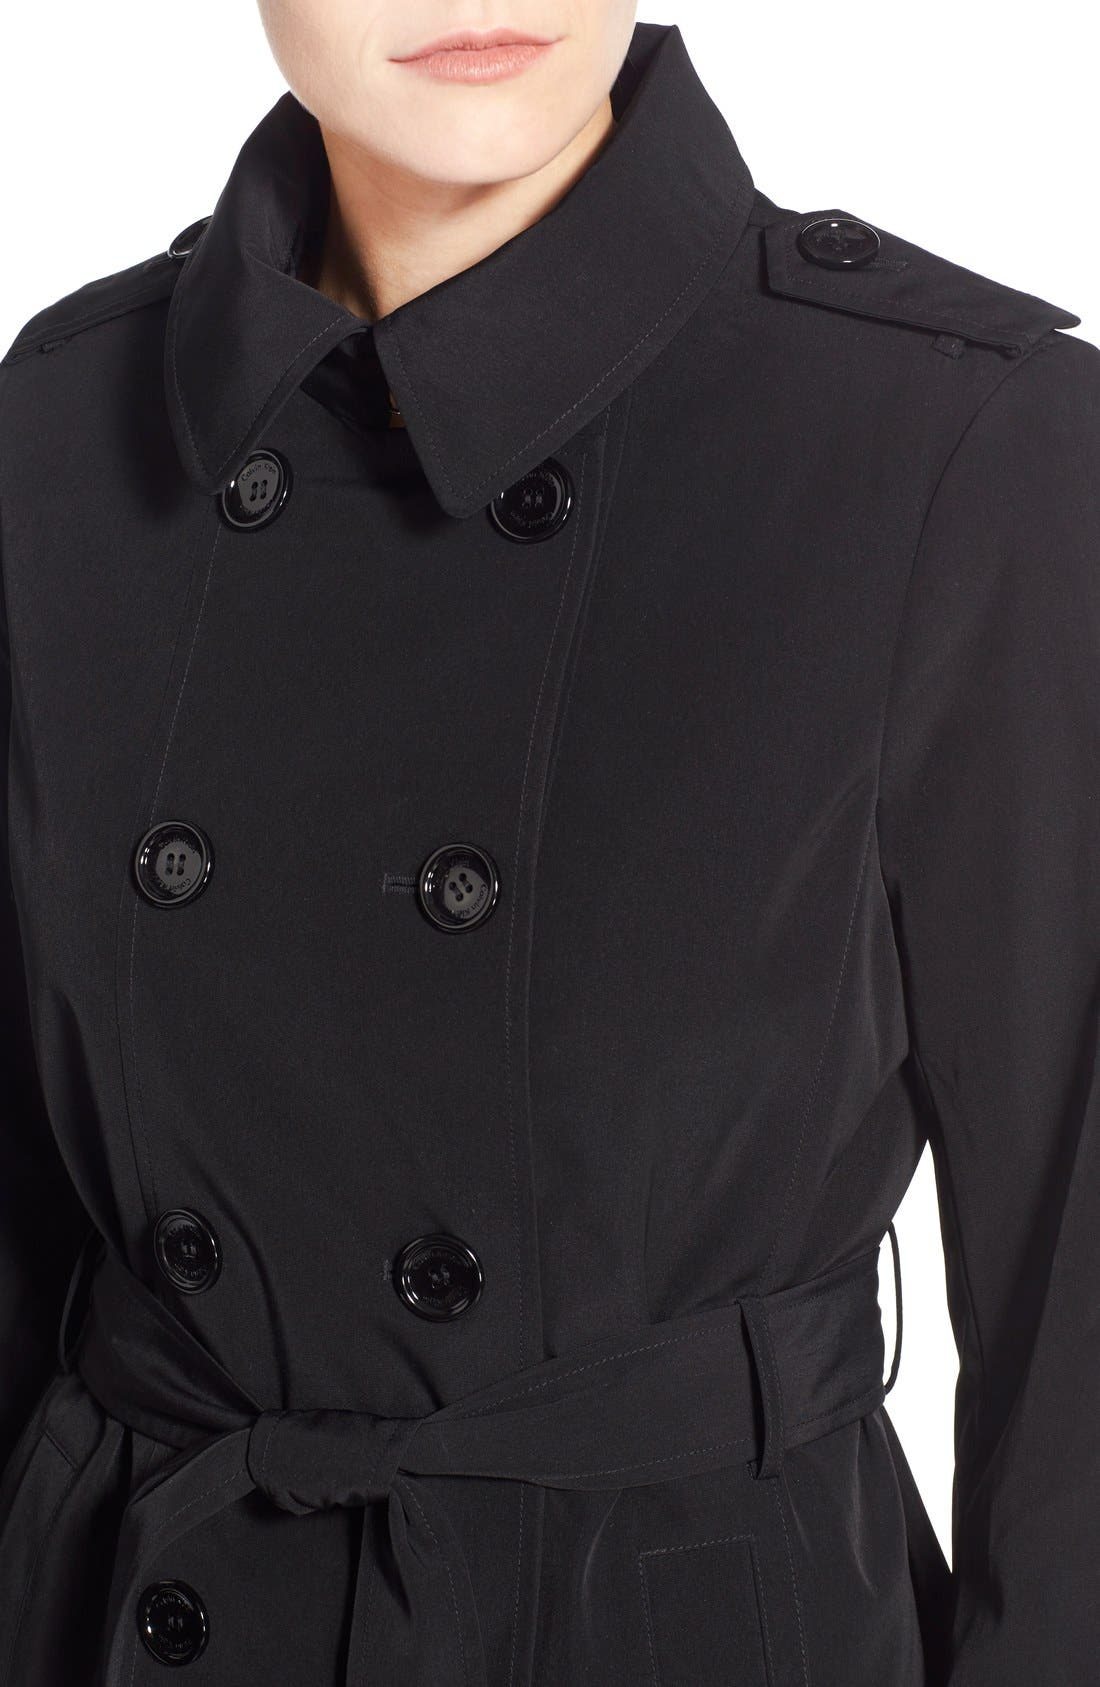 CALVIN KLEIN, Double Breasted Trench Coat, Alternate thumbnail 5, color, 001